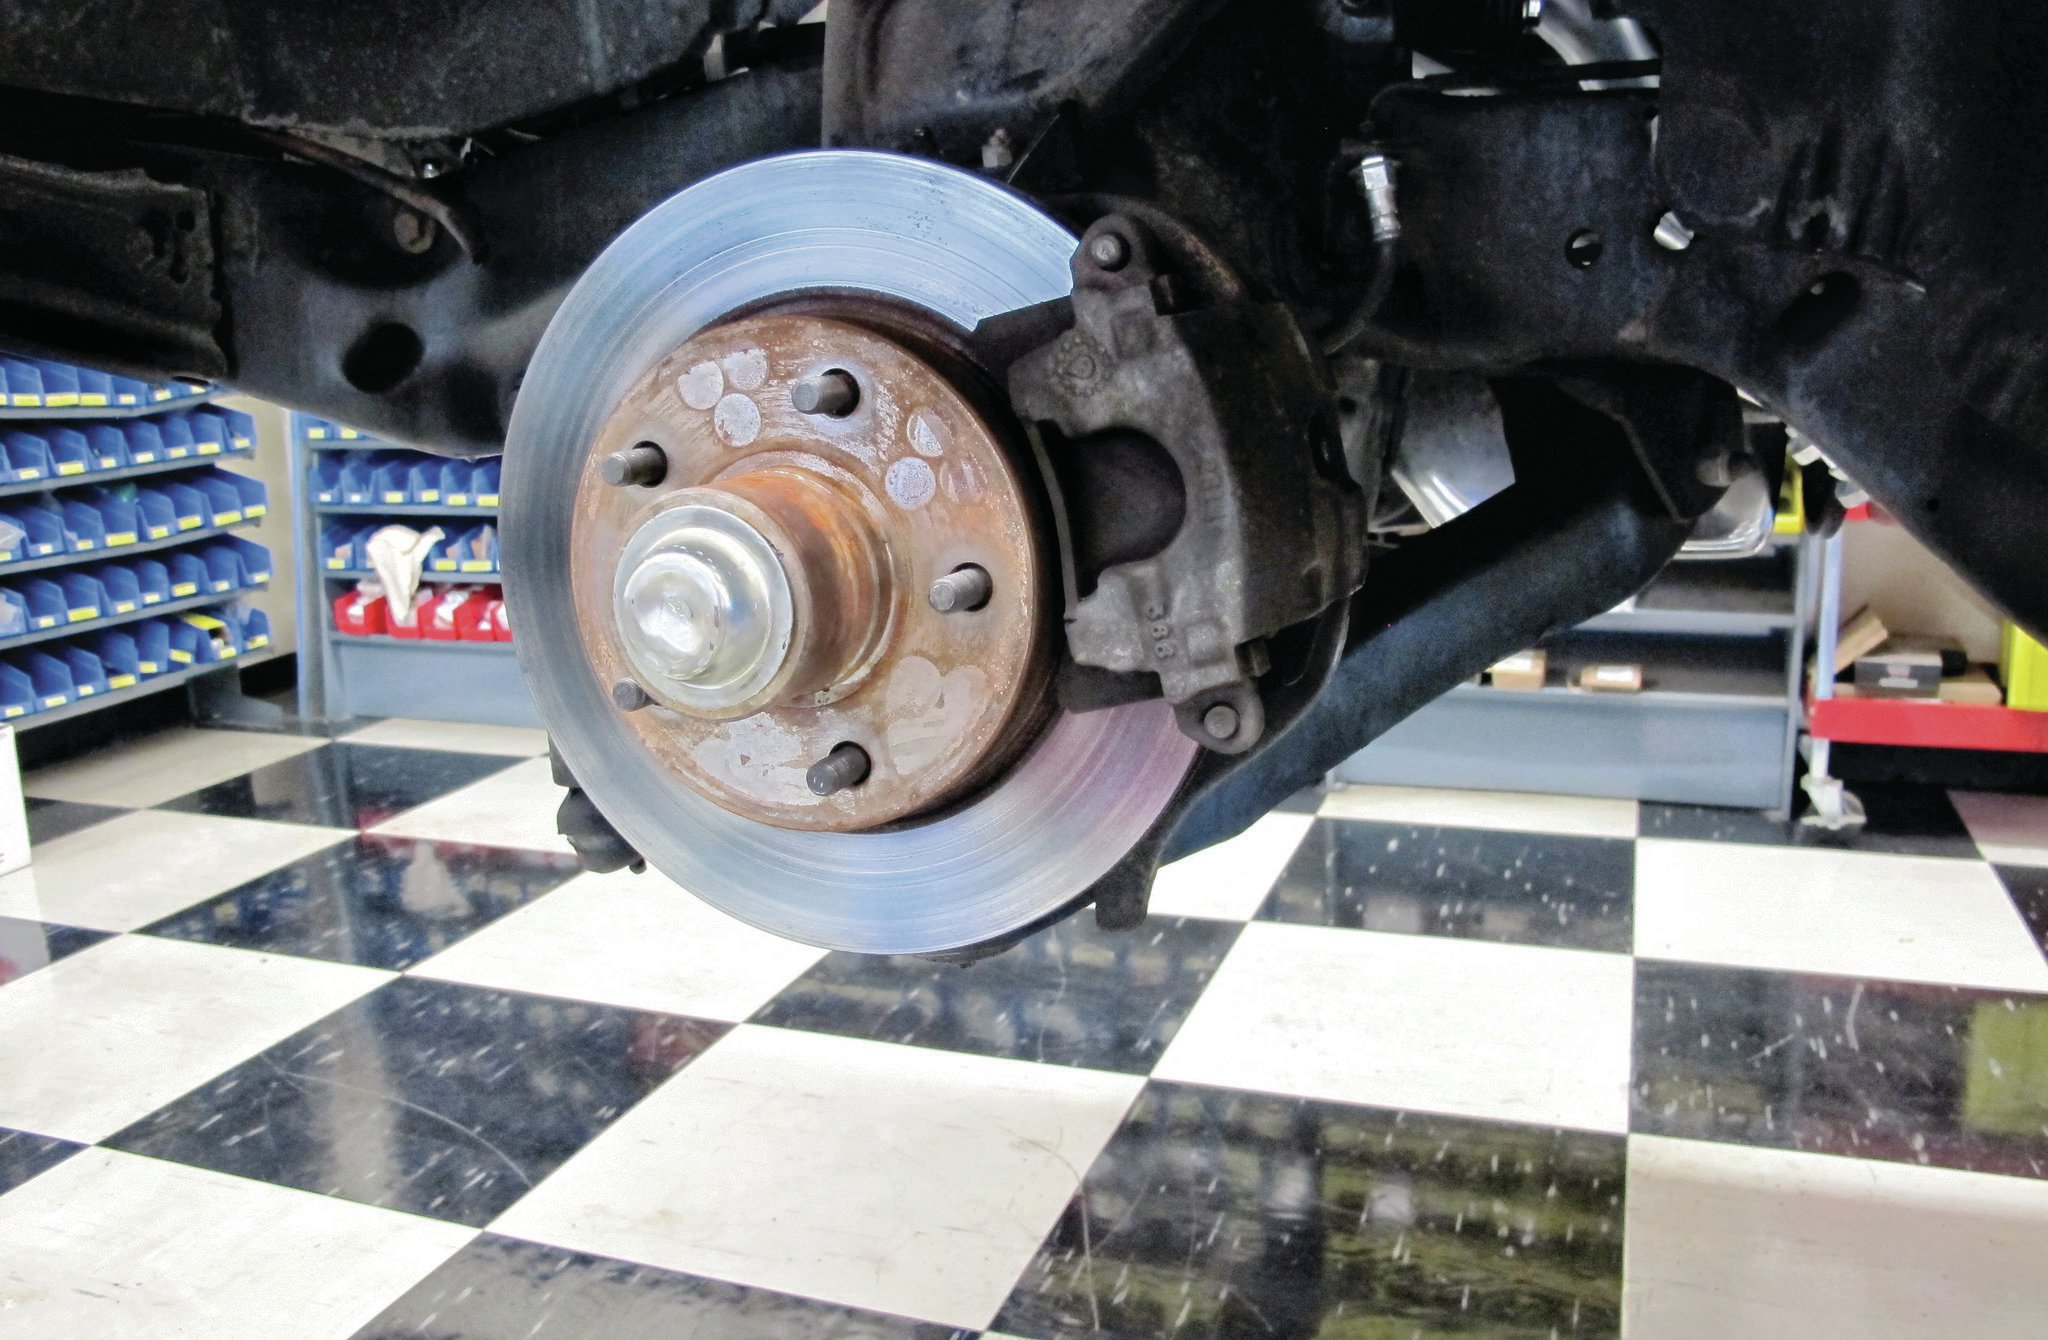 These are OEM-style aftermarket front discs, which are built from cast-iron and weigh nearly 19 pounds each.